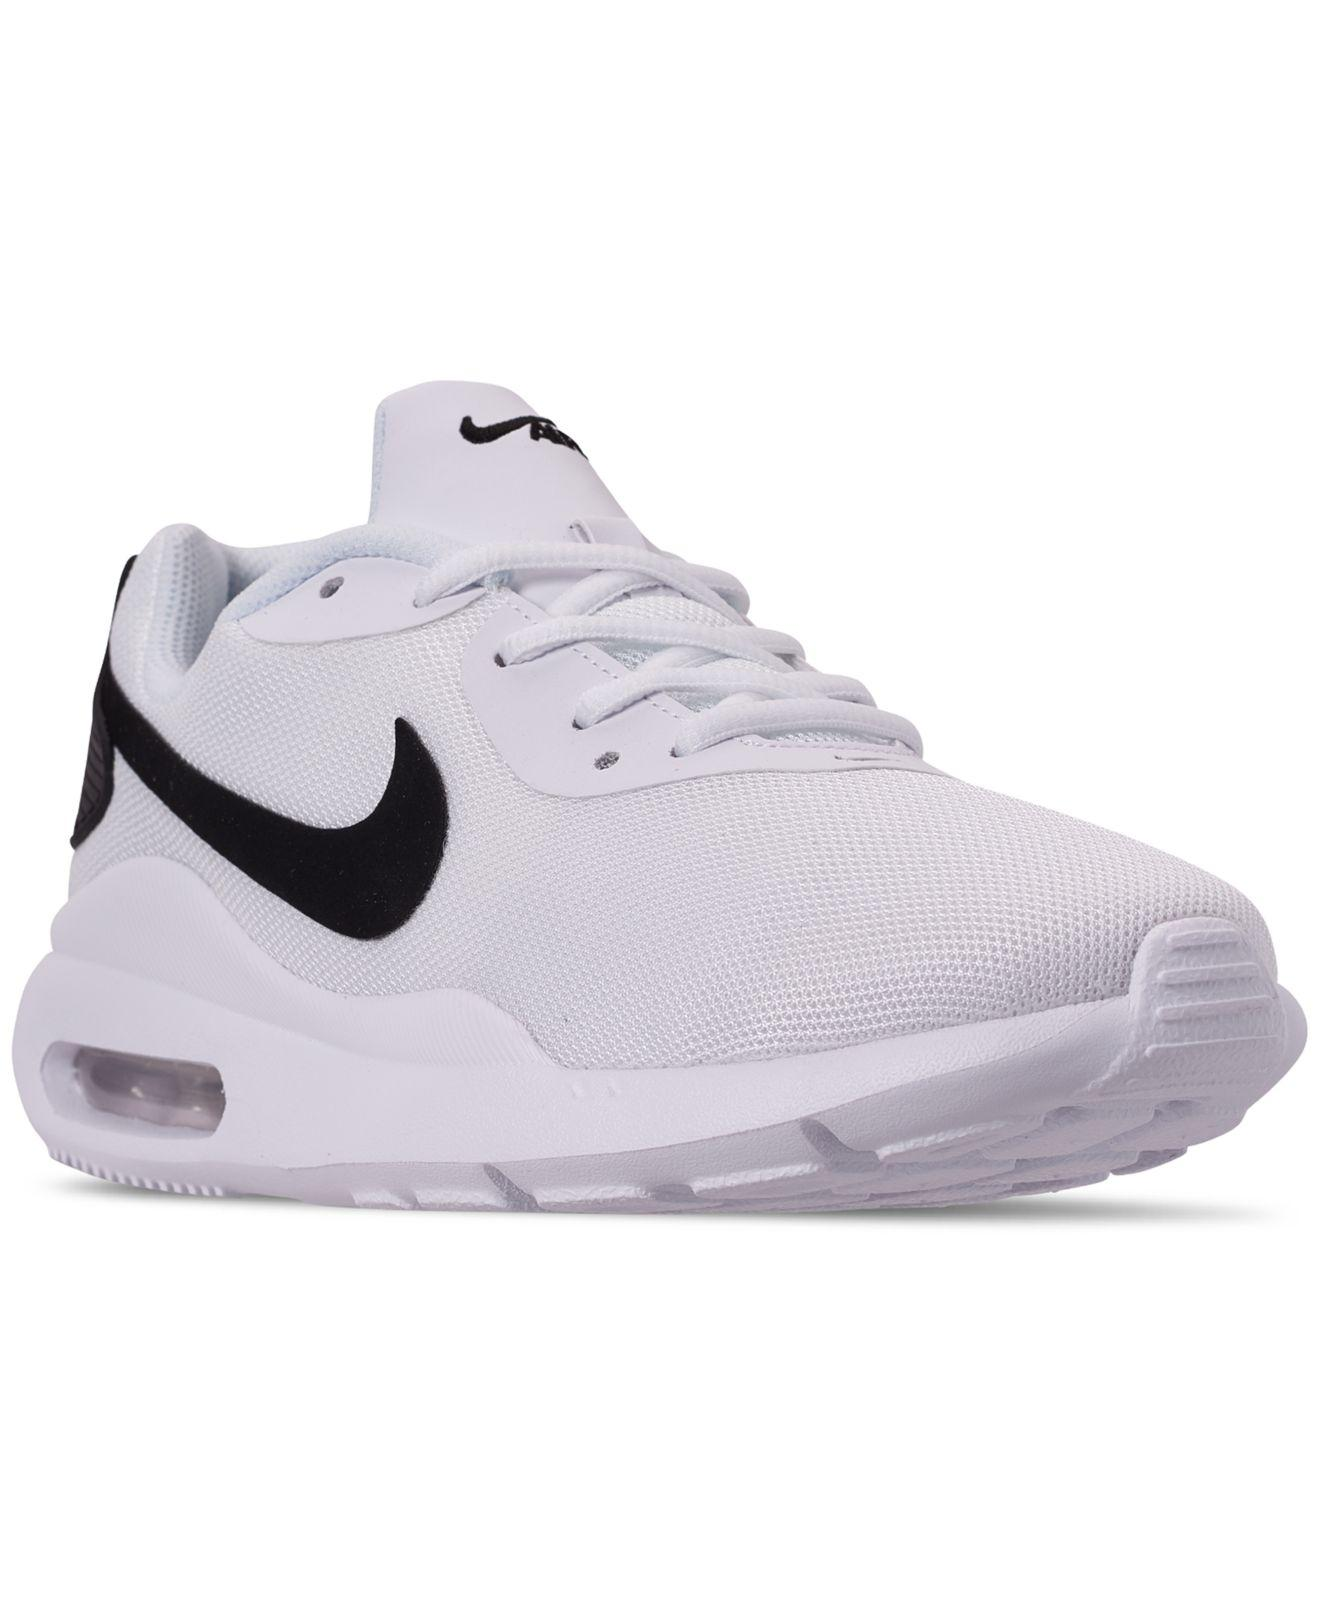 0e5b9f13b6 Nike Air Max Oketo Shoe in White for Men - Save 1% - Lyst